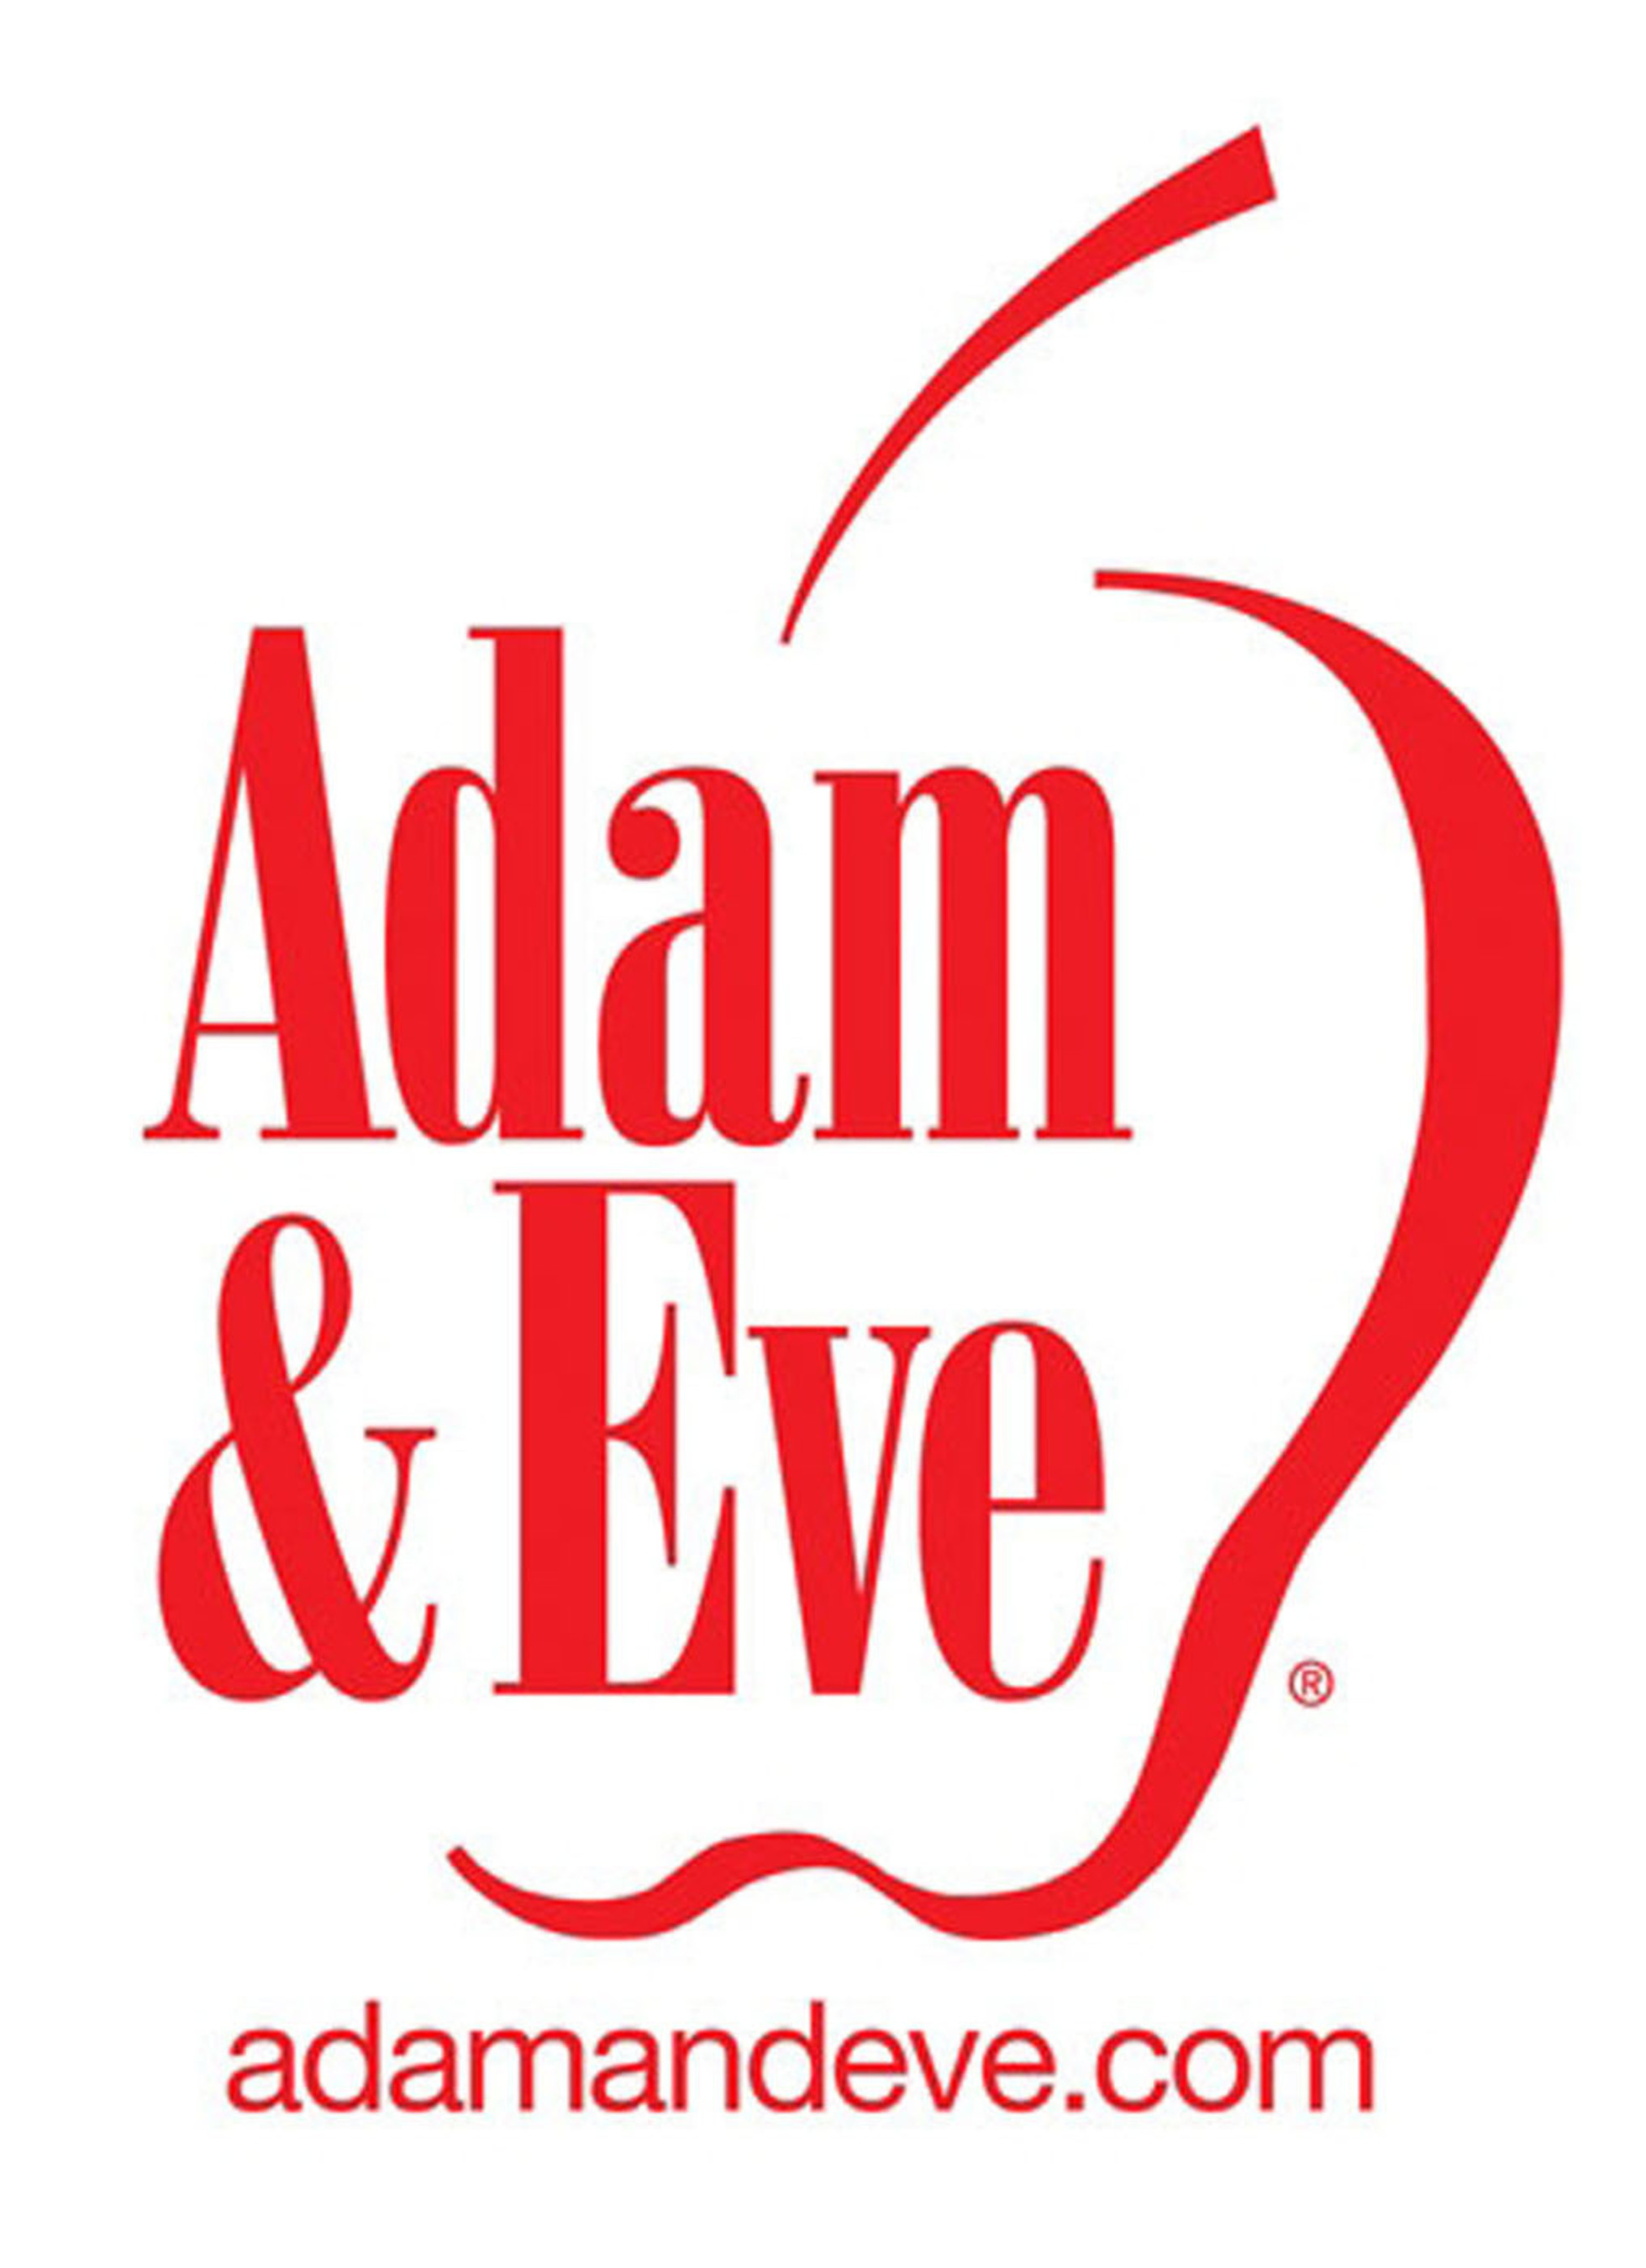 Adamandeve.com Finds Nearly Half Of Americans 'Hooking Up'